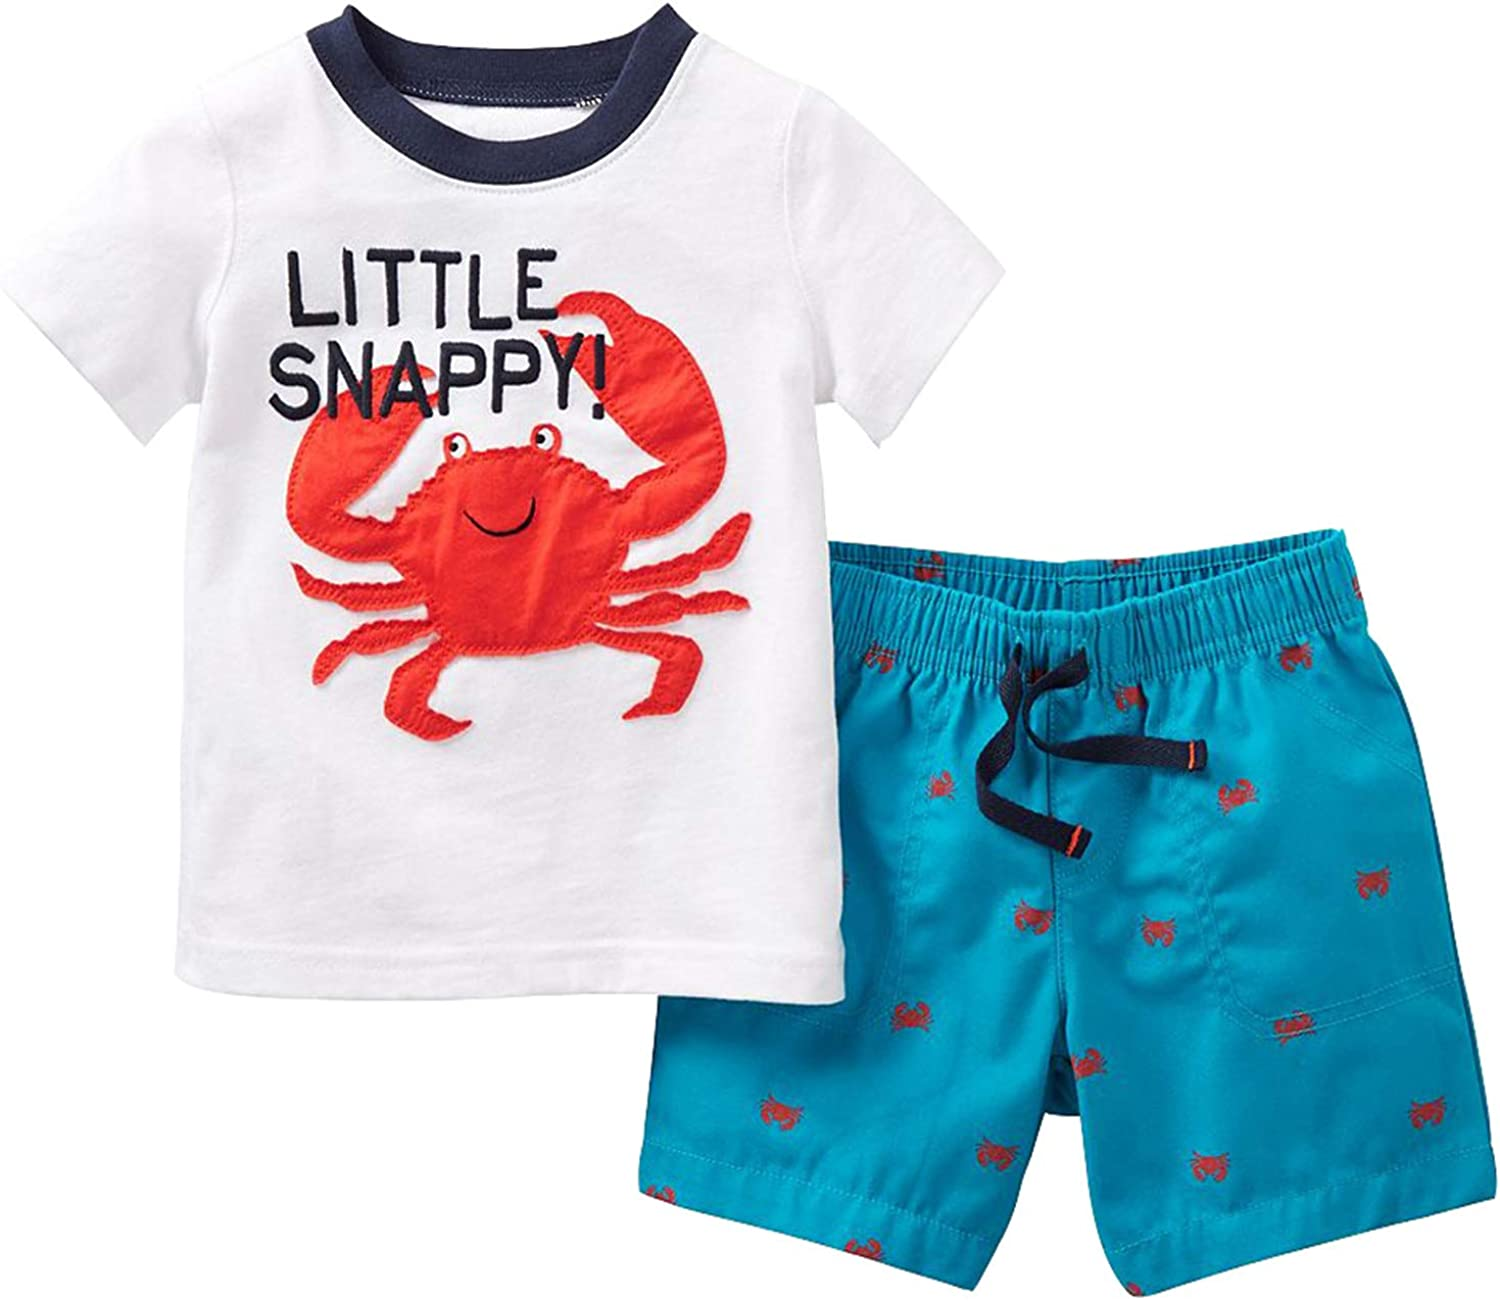 Toddler Boys Cotton Clothing Sets Shorts Tee Sale and Short Direct store Sleeve